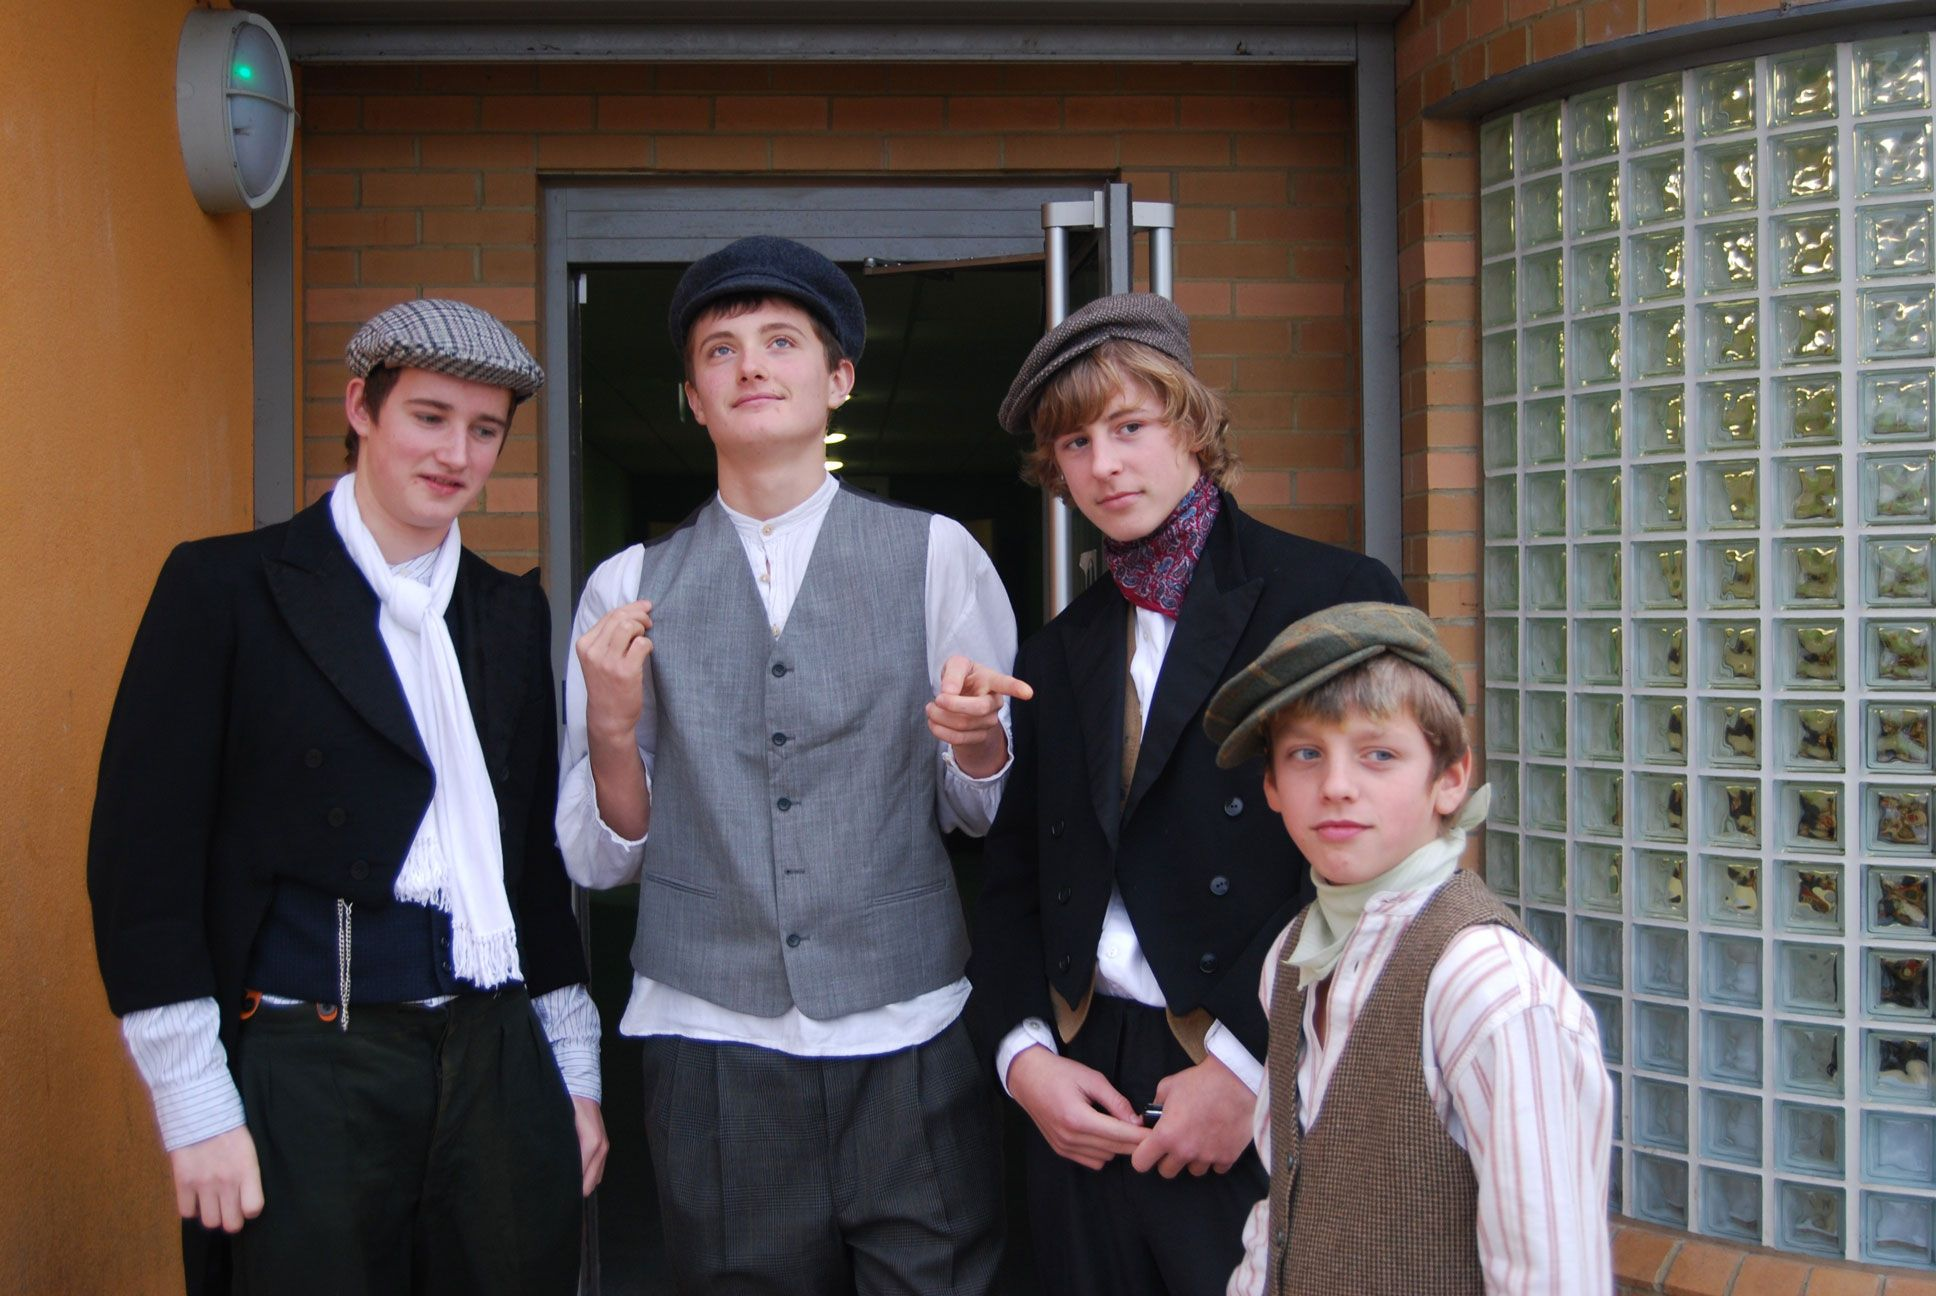 Four boys from Crew Club, Whitehawk in Victorian costume for Christmas dinner offered to elderly neighbours